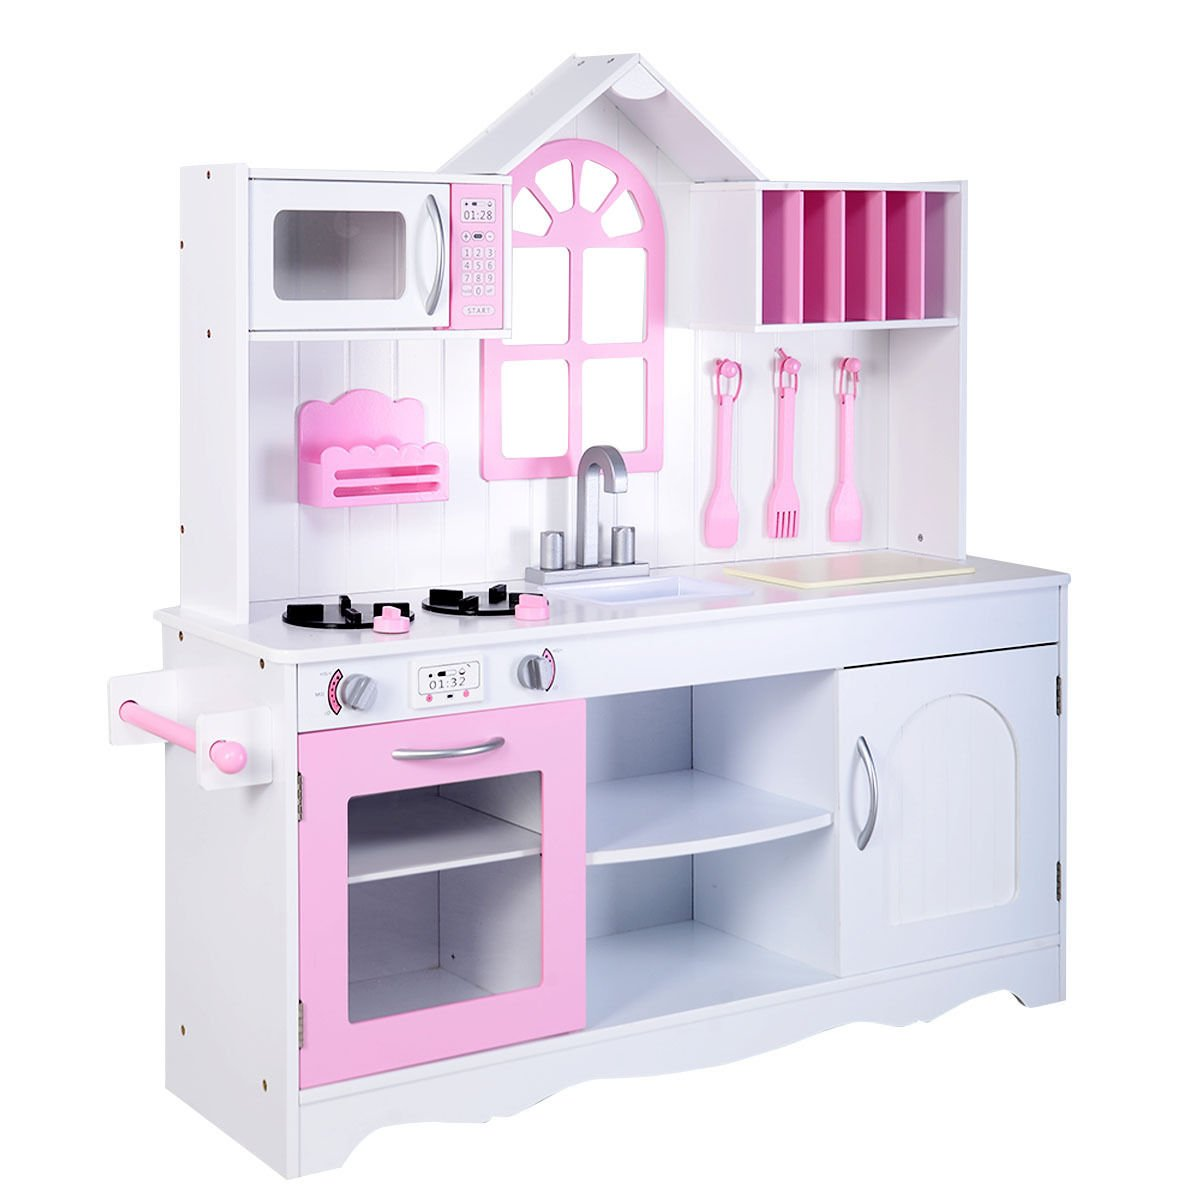 Beau Amazon.com: Costzon Kids Wood Kitchen Toy Cooking Pretend Play Set Toddler  Wooden Playset: Toys U0026 Games